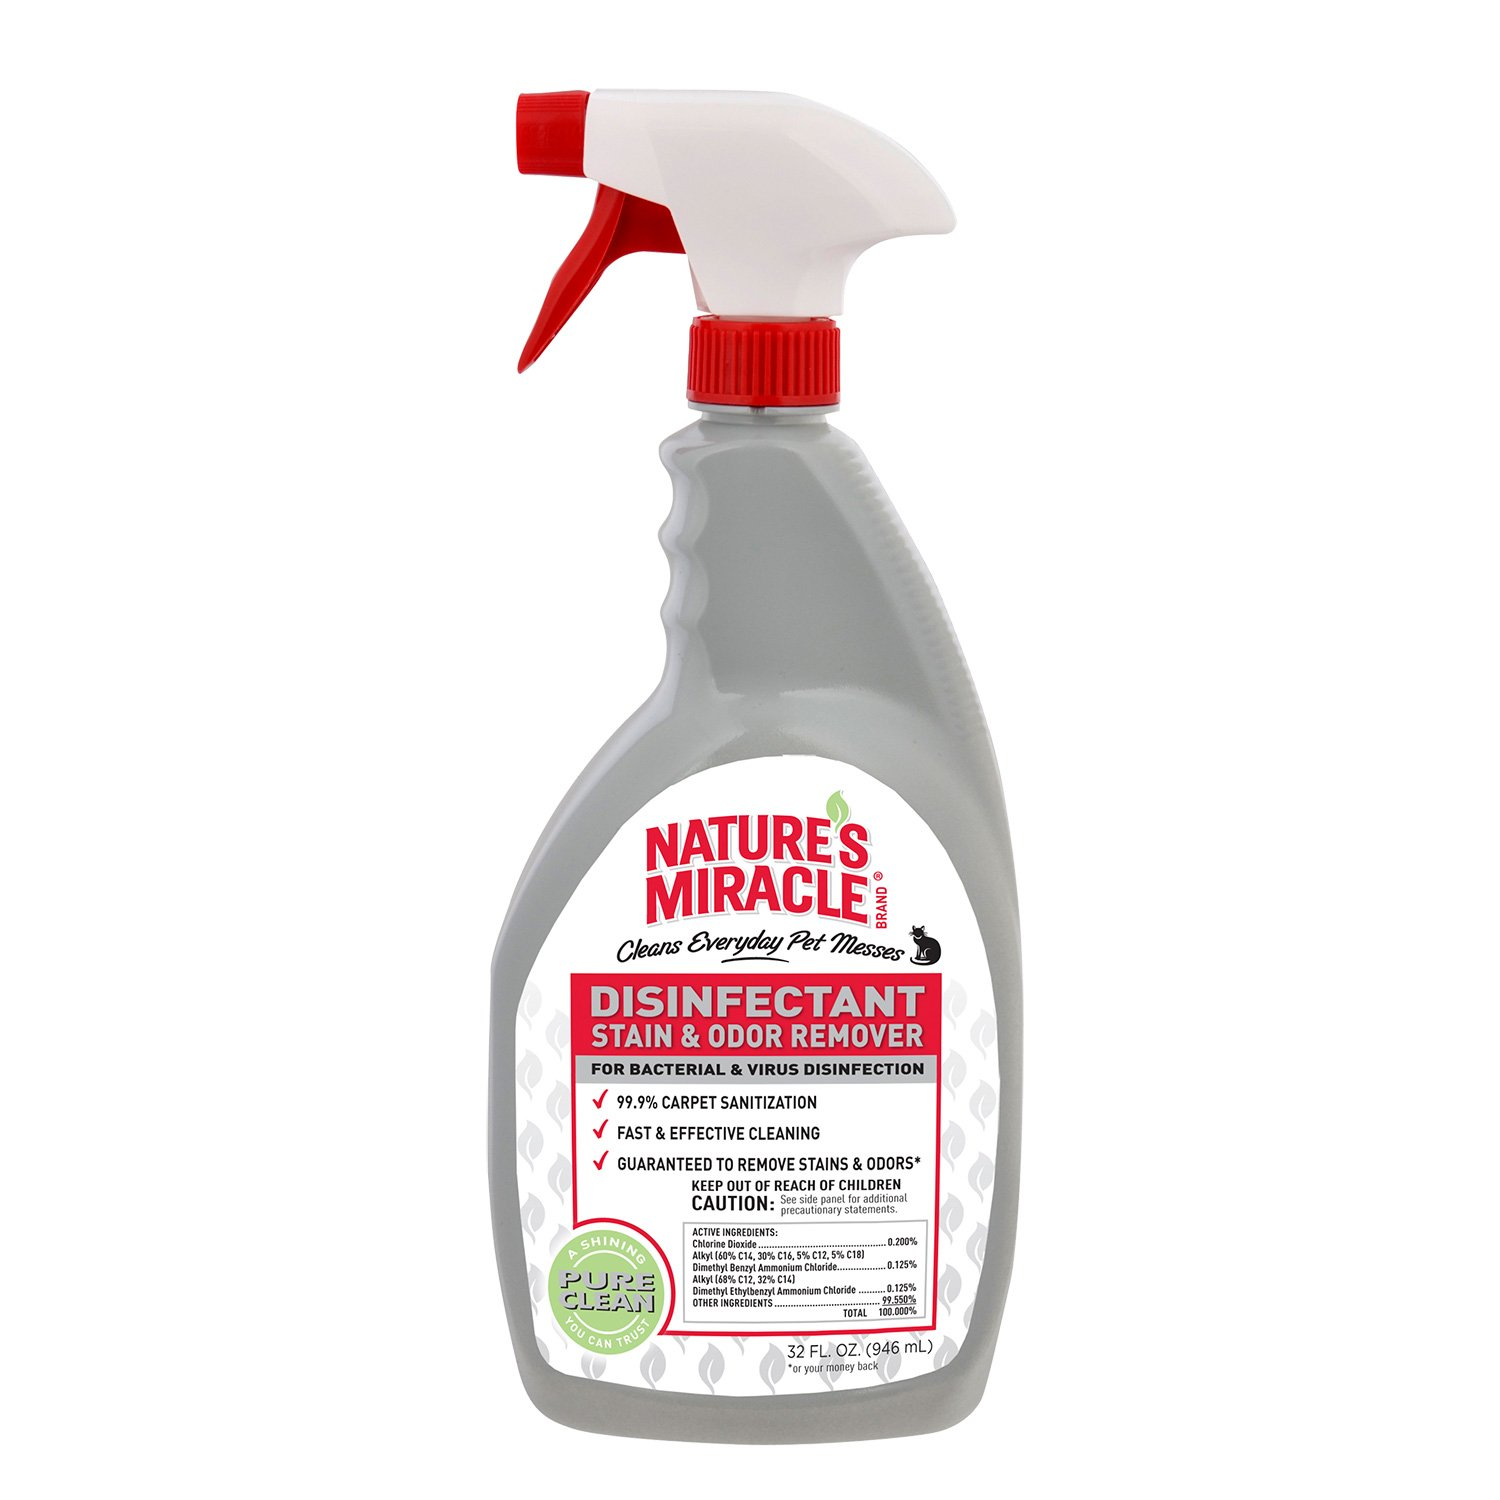 Nature's Miracle NM-5482 Brand Disinfectant Stain Odor Remover, 32 oz